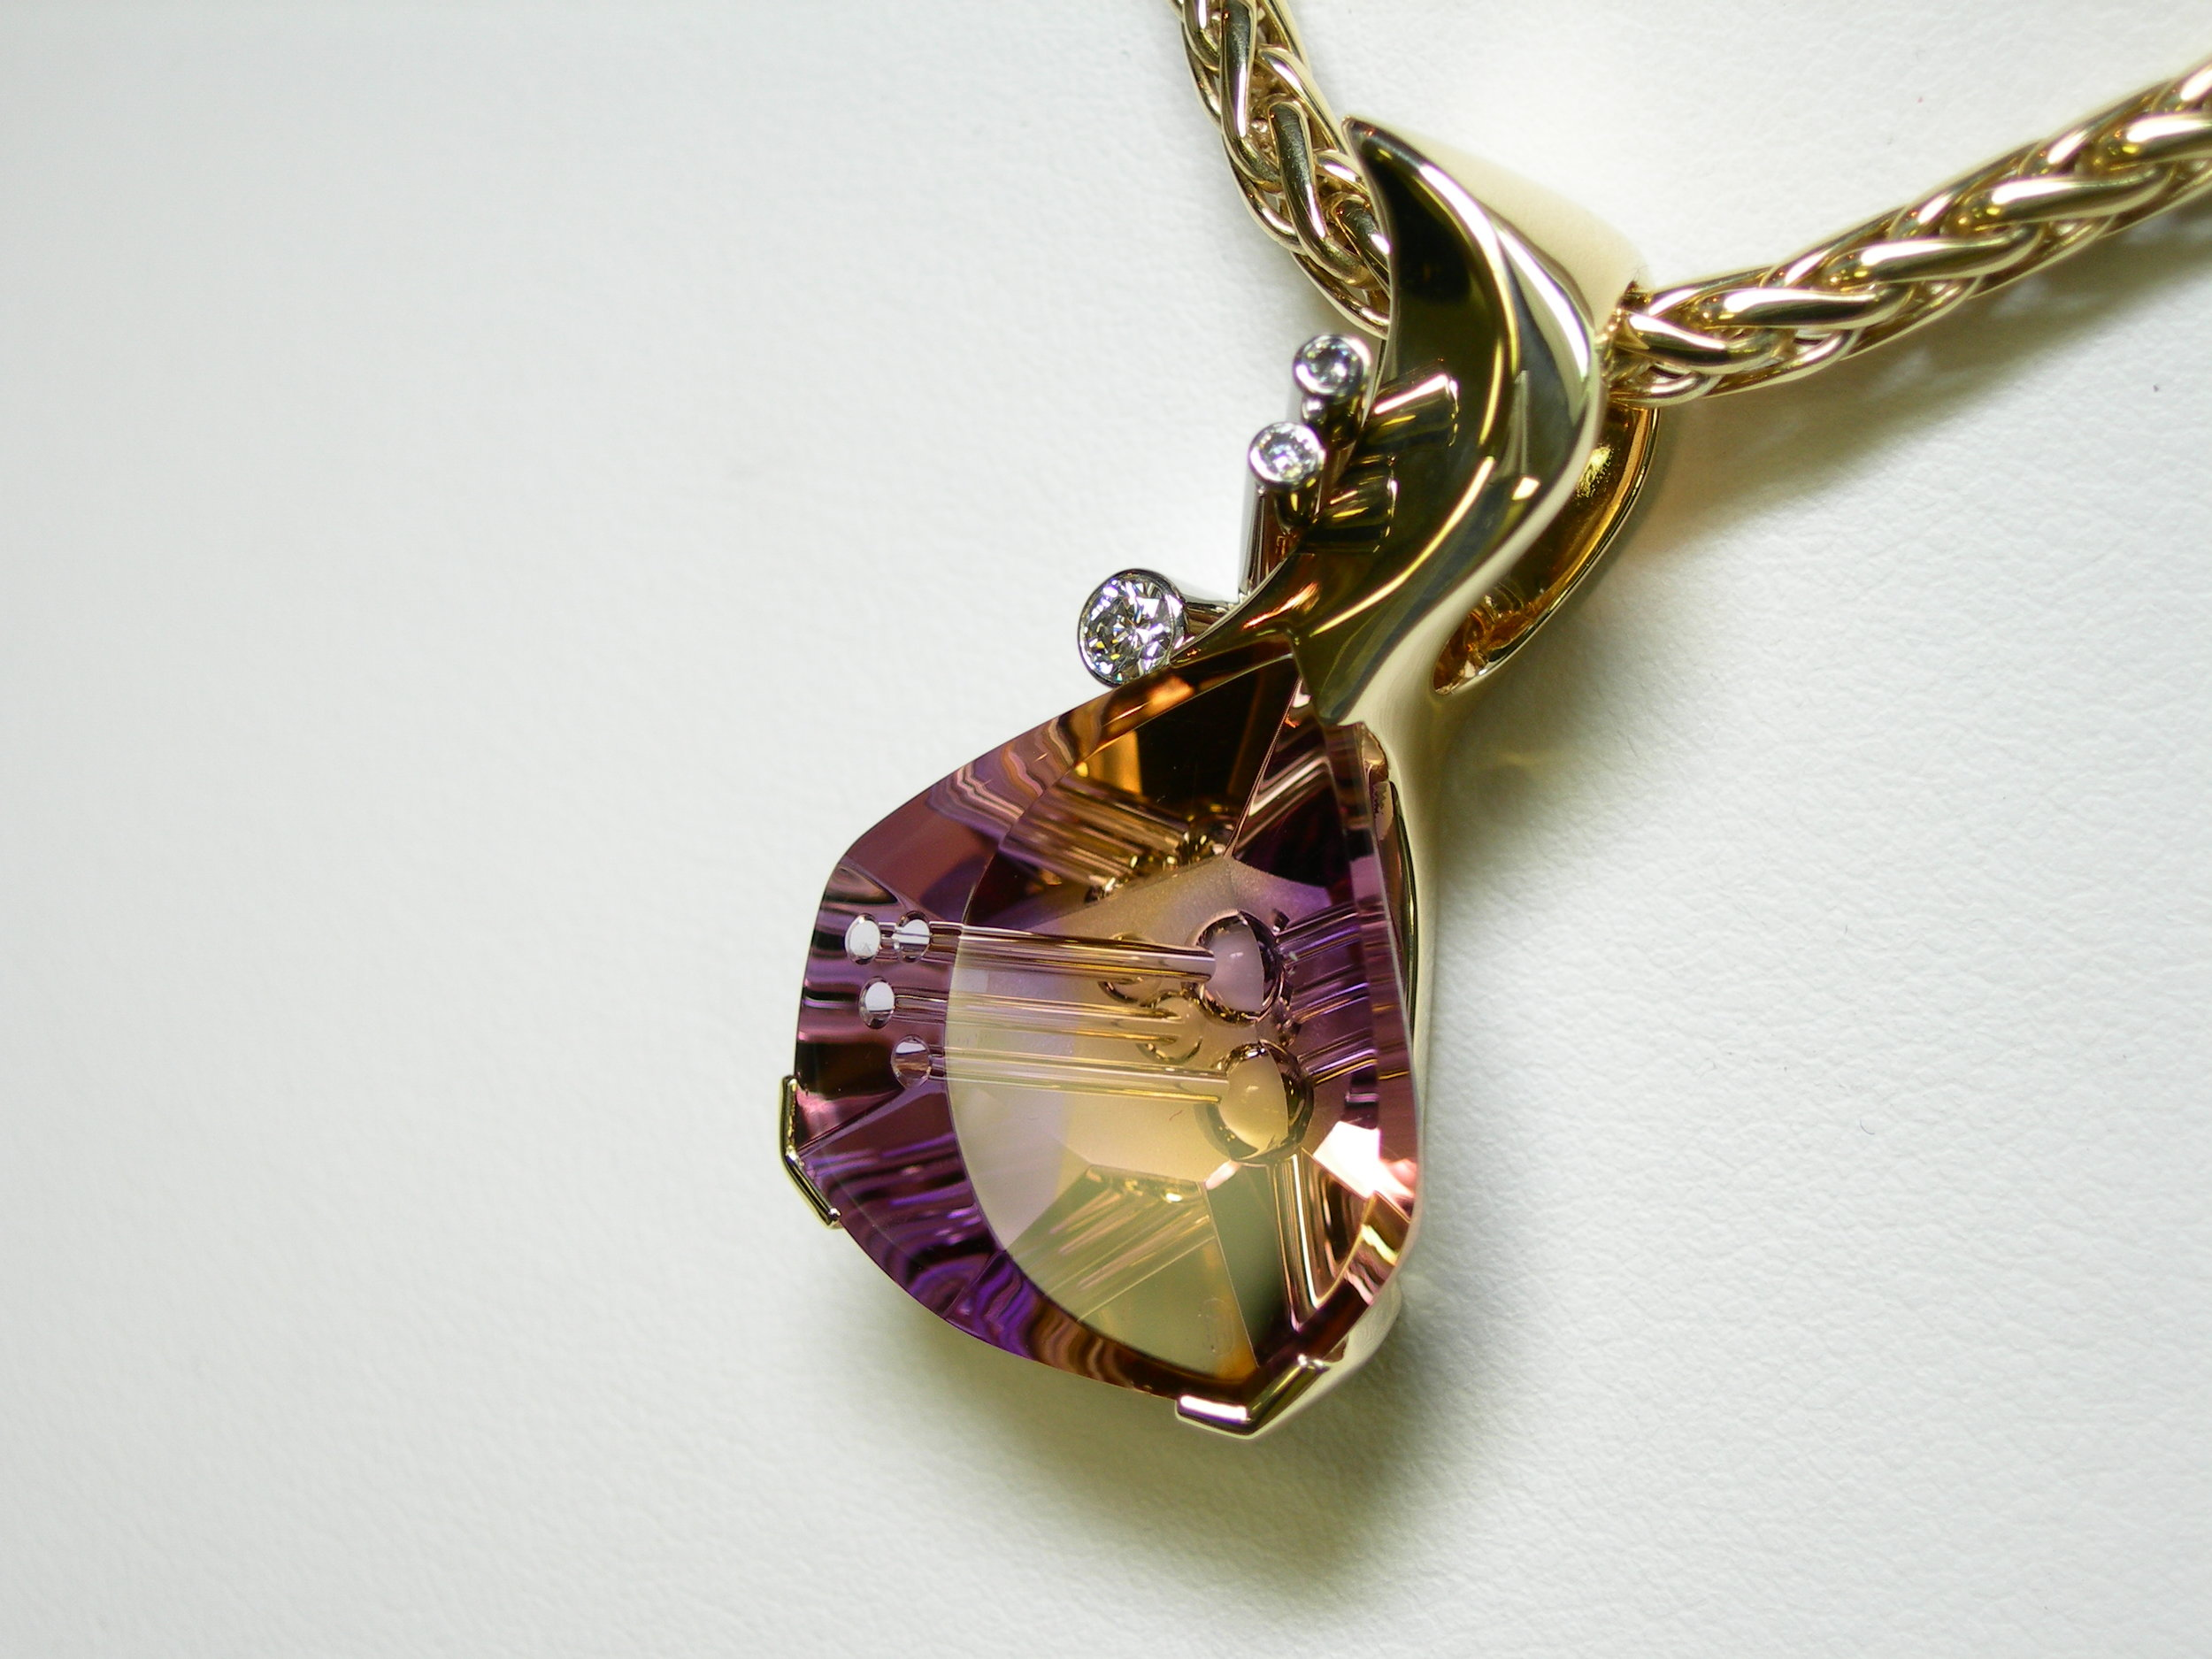 Award winning pendant, Iowa Jeweler's Association 1999, First Place, and Best of Show. One of 32 top entrants in the country at the 2000 Jewelers of America show in New York.